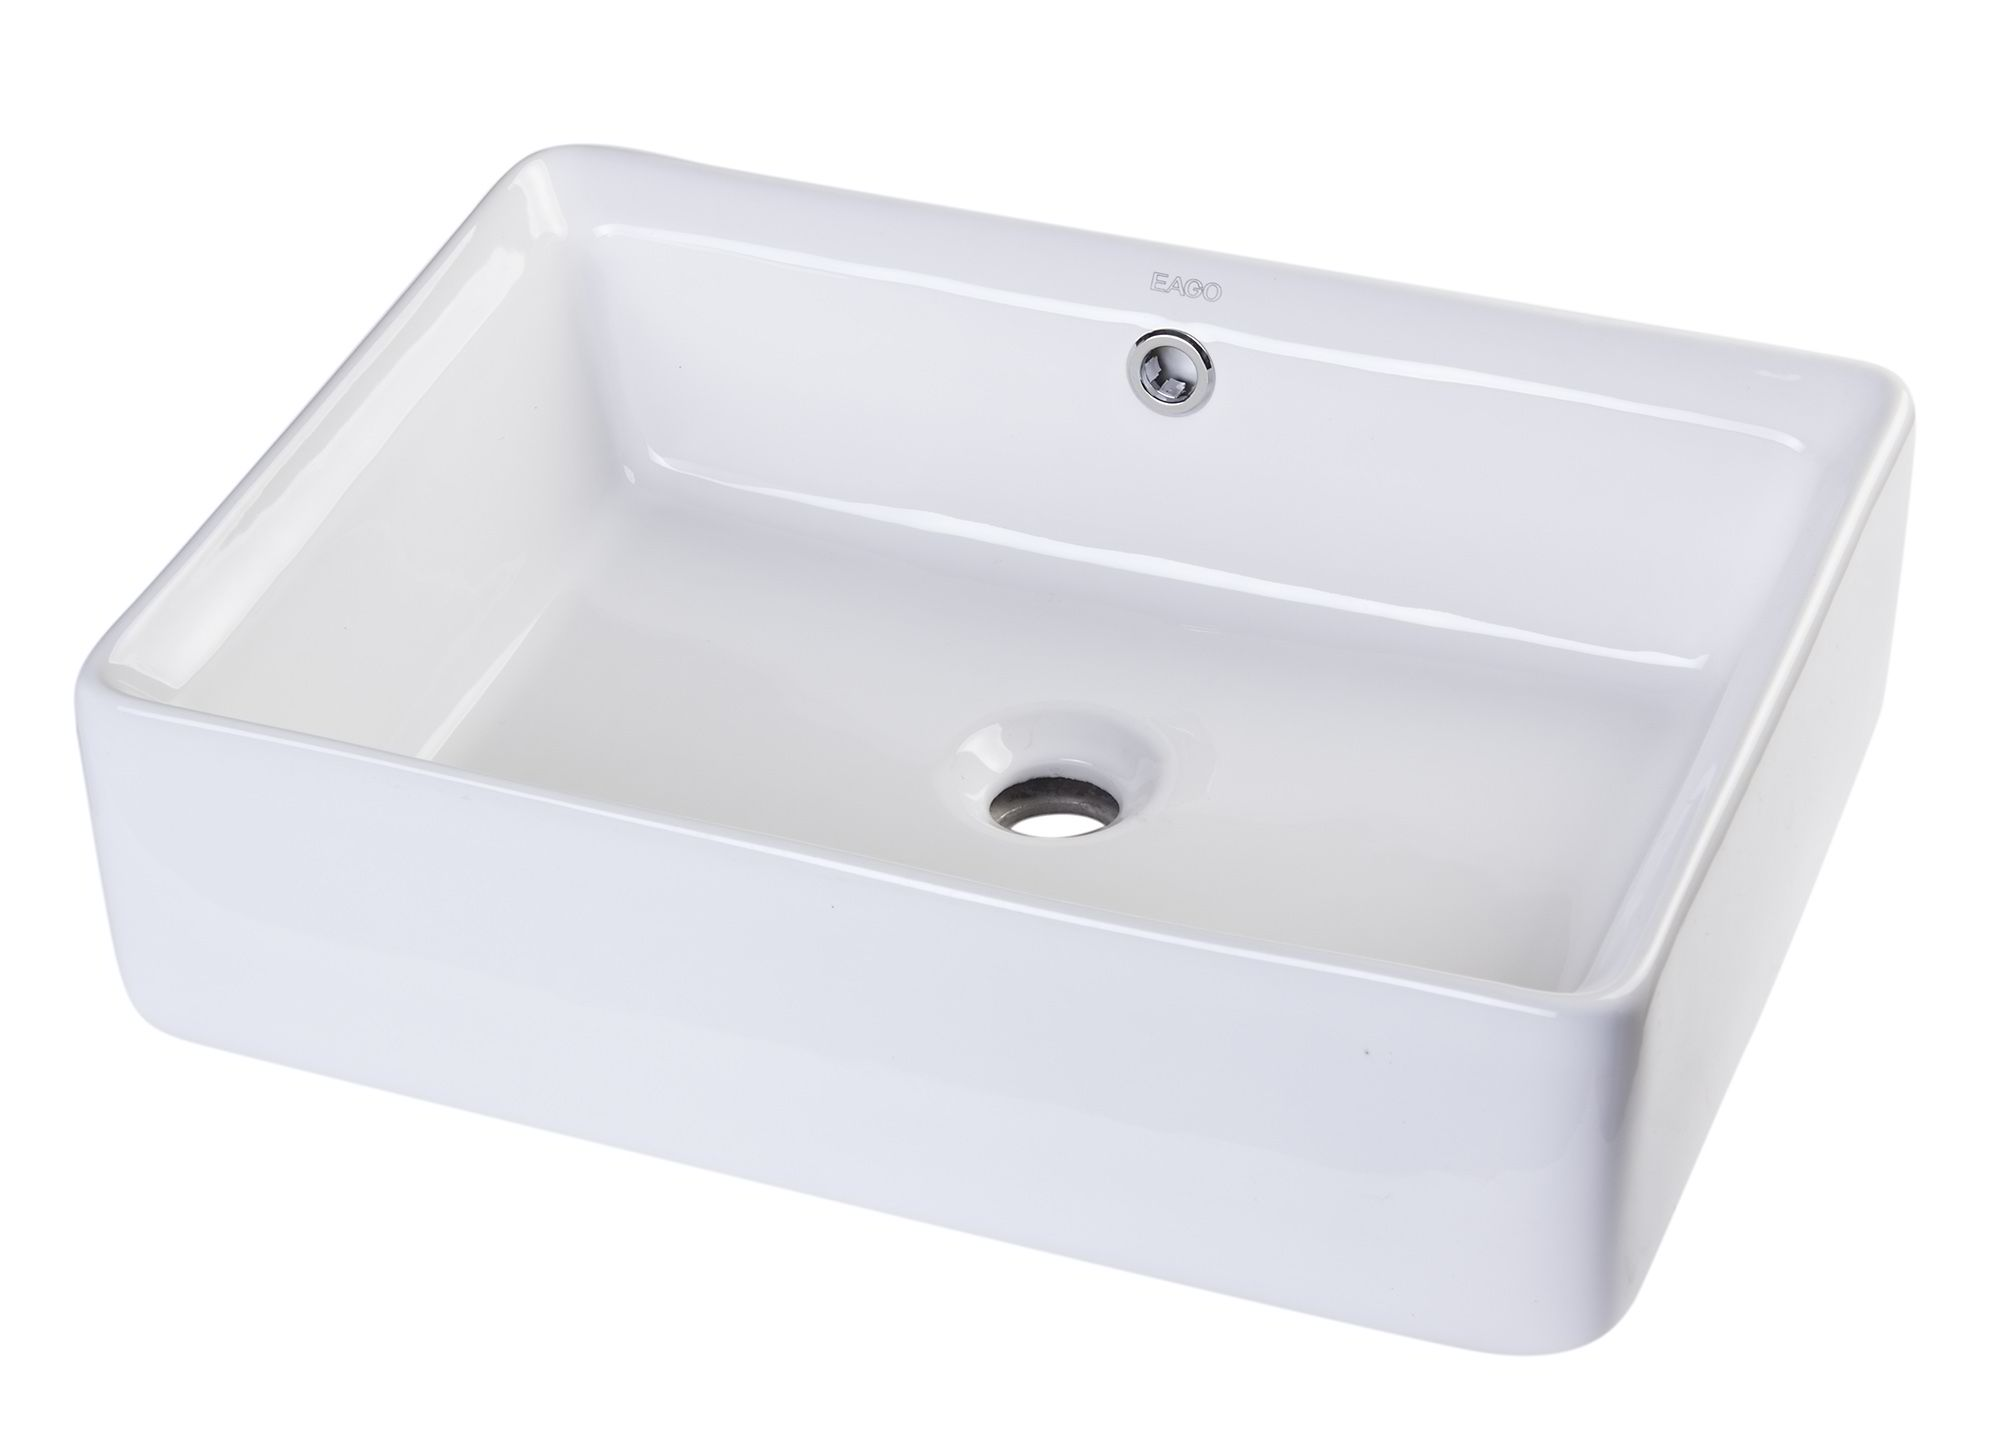 "EAGO BA131 20"" RECTANGULAR CERAMIC ABOVE MOUNT BASIN VESSEL SINK"